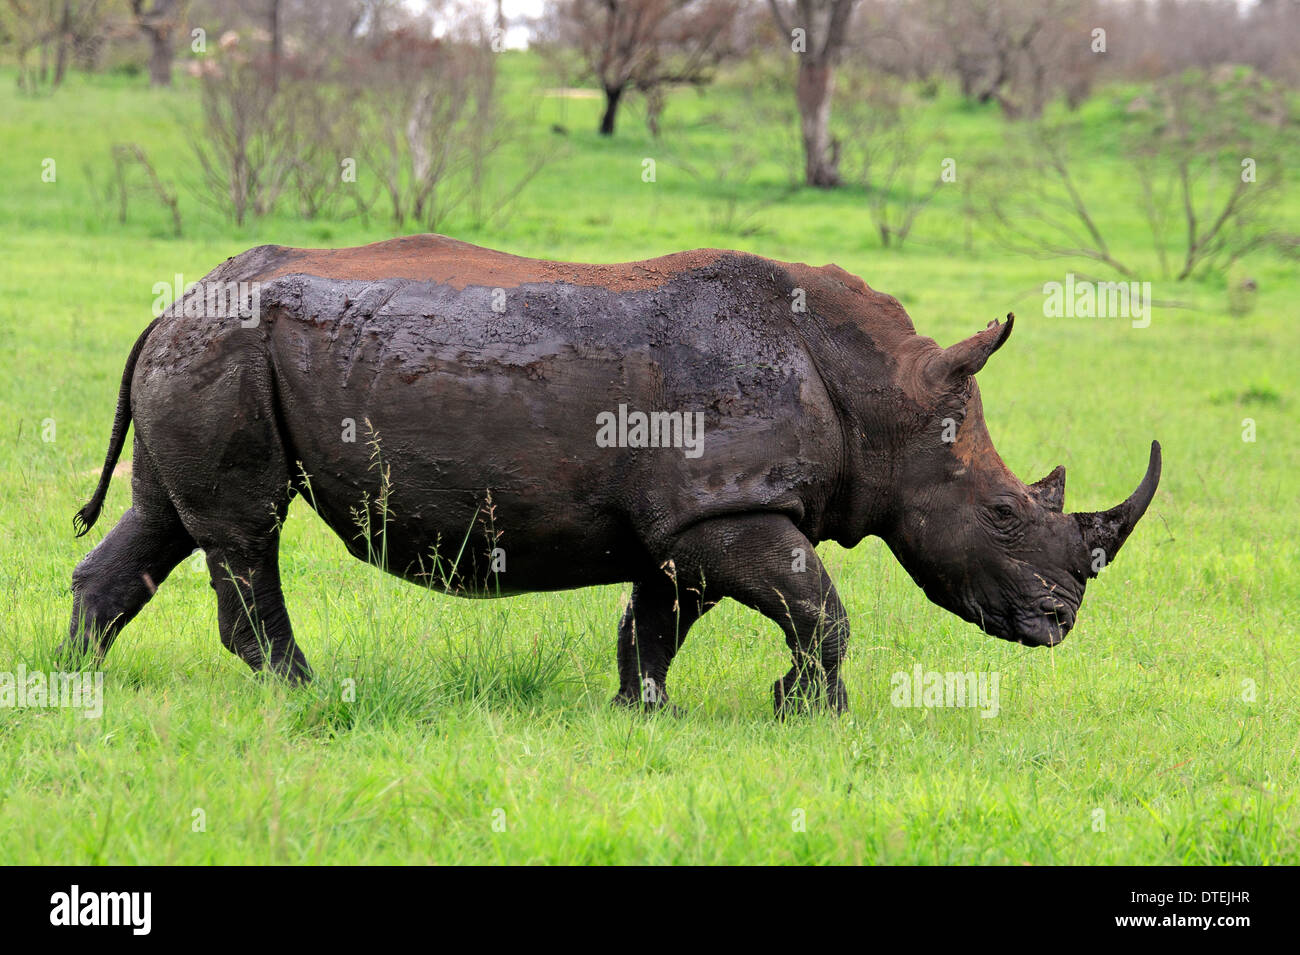 Wide-mouthed Rhinoceros, Sabi Sabi Game Reserve, Kruger national park, South Africa / (Ceratotherium simum) / side - Stock Image